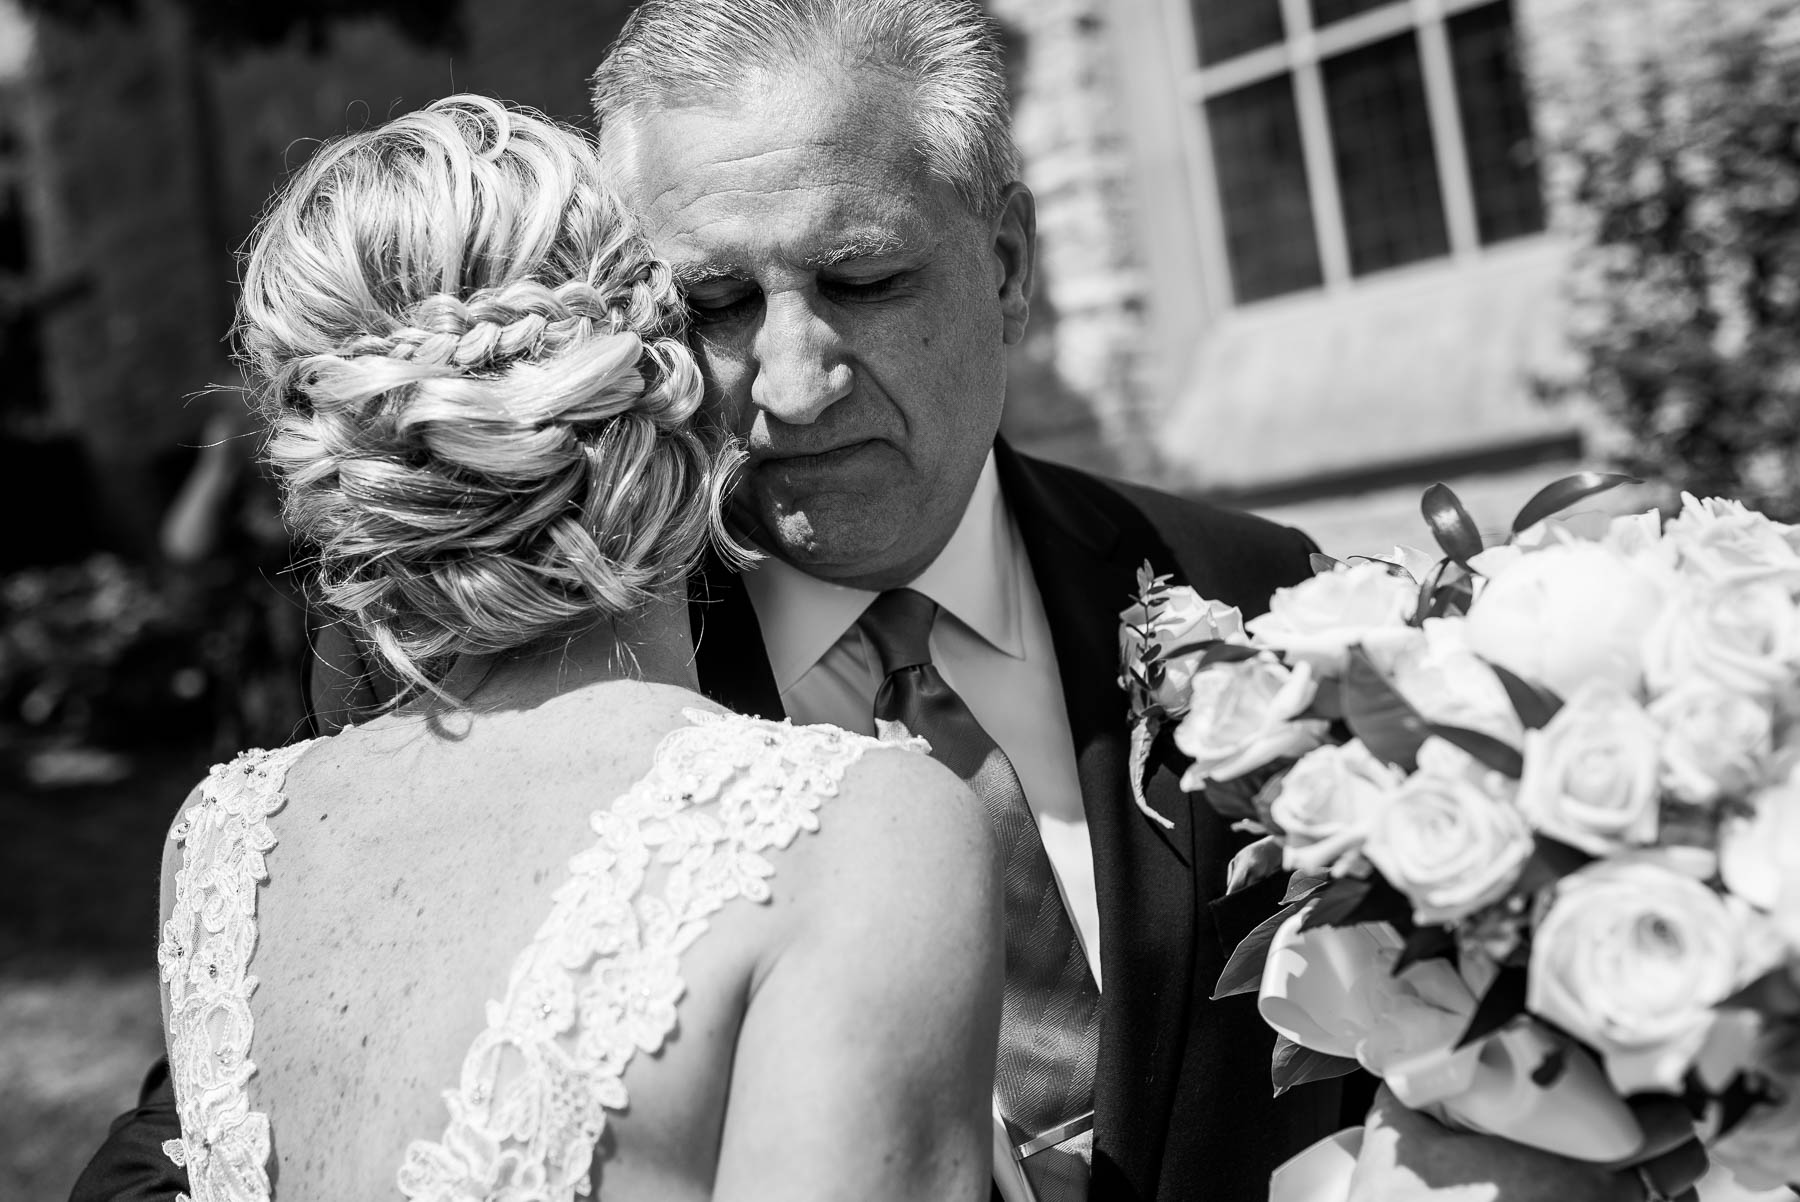 Emotional moment between father and bride before her St. Charles Country Club wedding.